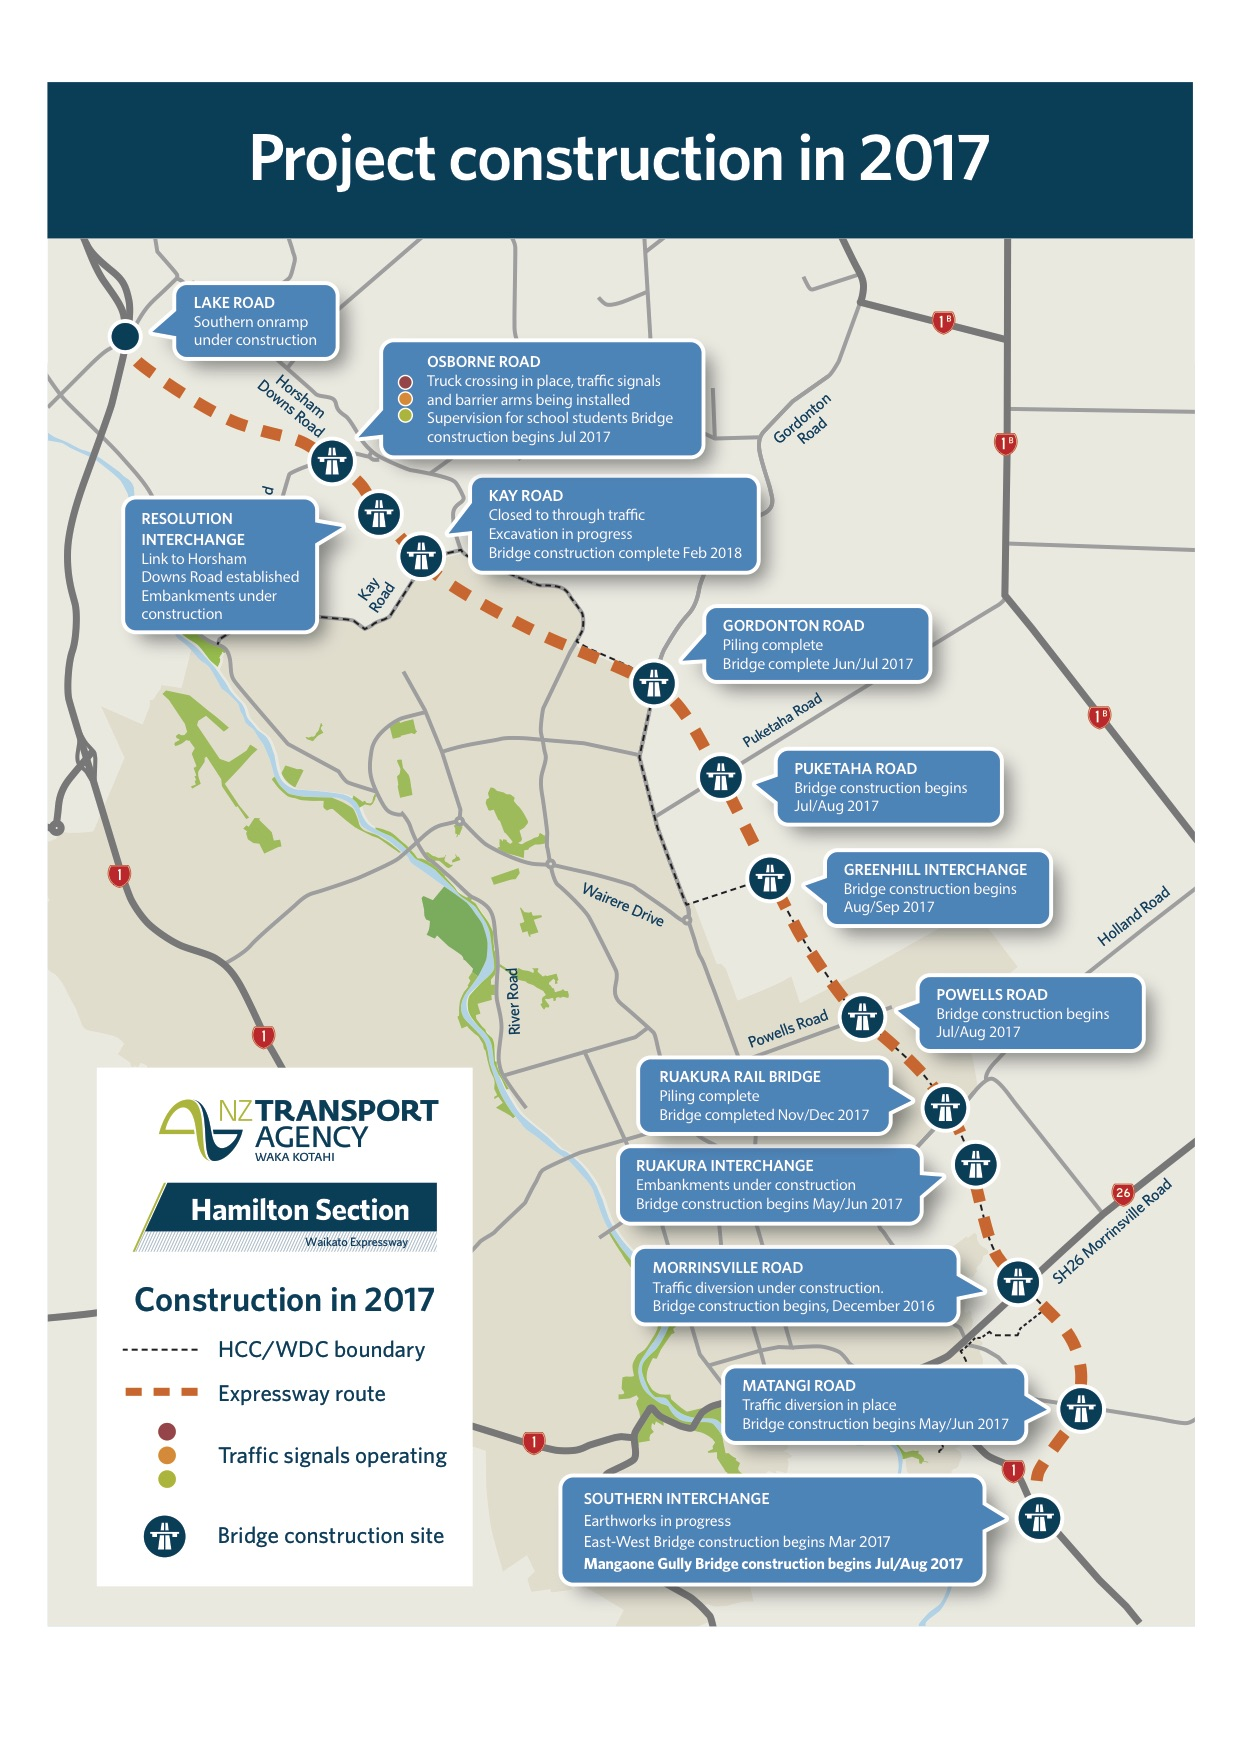 NZTA_EWAY_Construction_Map_2017.jpg